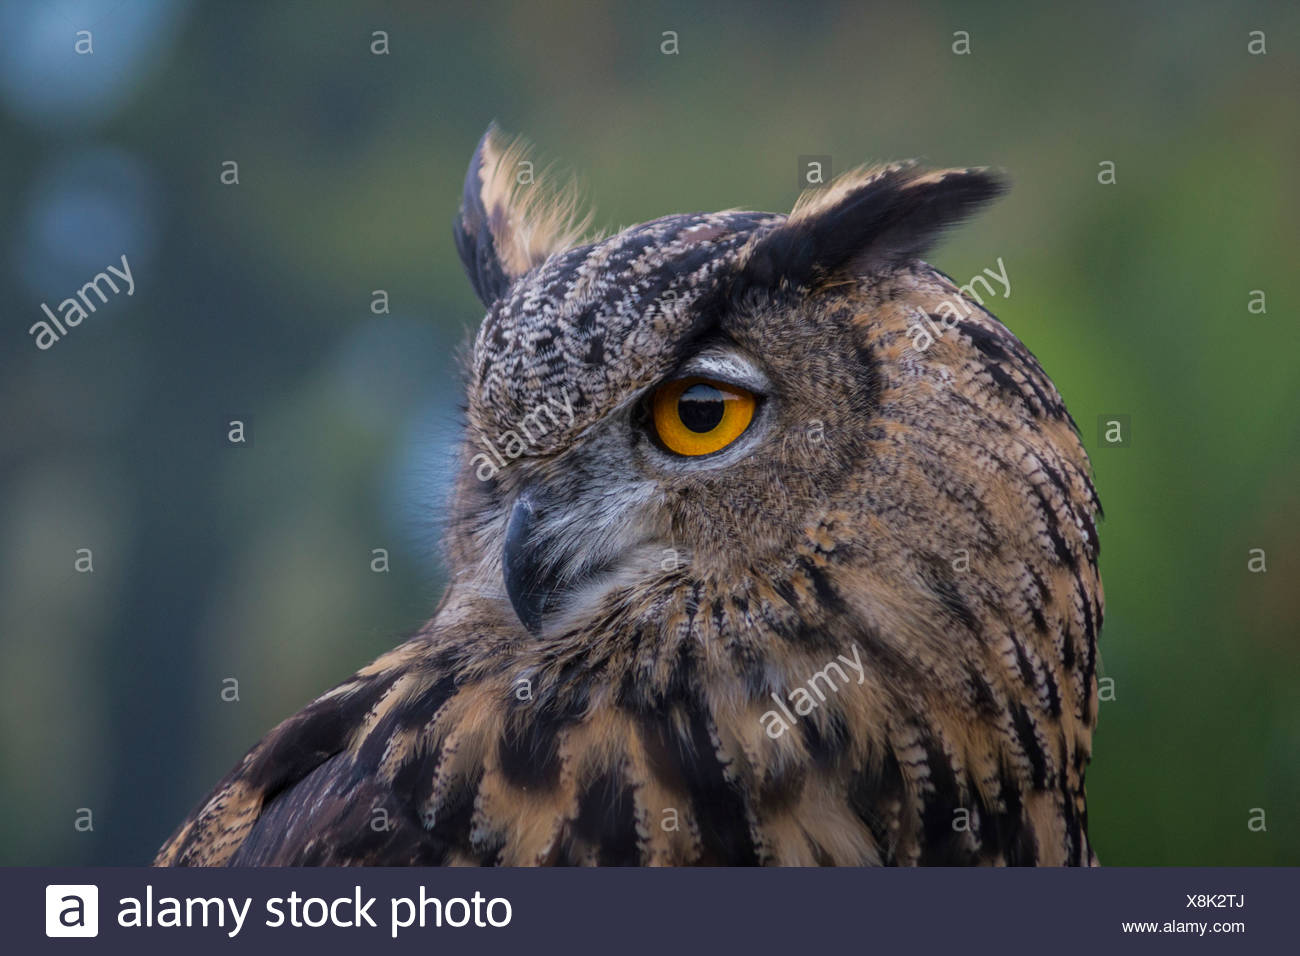 birds of prey, bird, Blackland Prairie Raptor Center, Bubo virginianus, Great Horned Owl, owl, Hunter, Strigidae, Texas, Tiger O - Stock Image